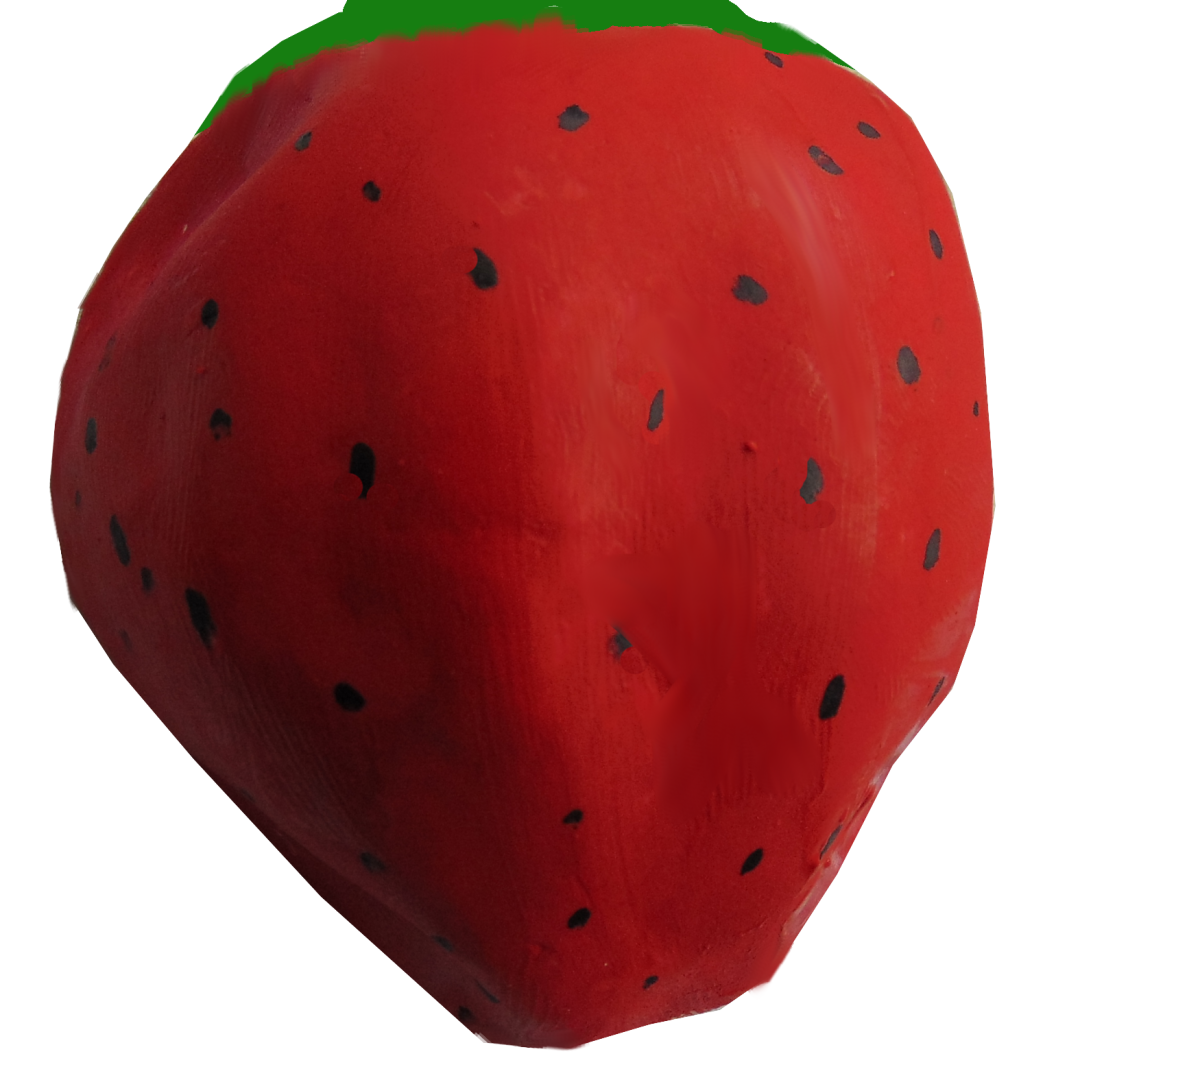 My apple looked more like a strawberry to me, so I went with it!